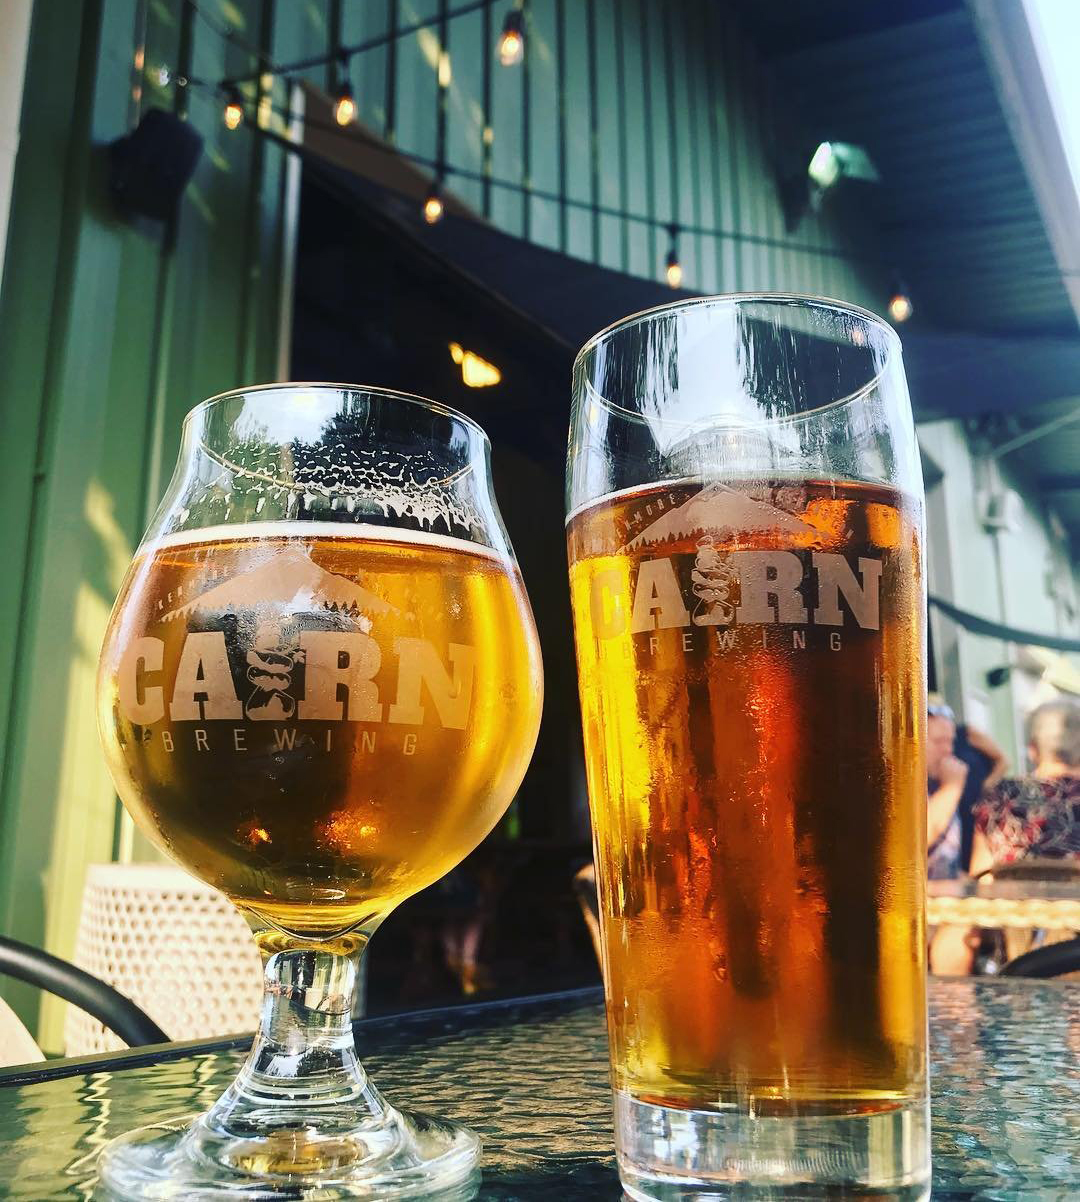 Glasses of beer on a table outside of Carin Brewing near Bothell, Washington.